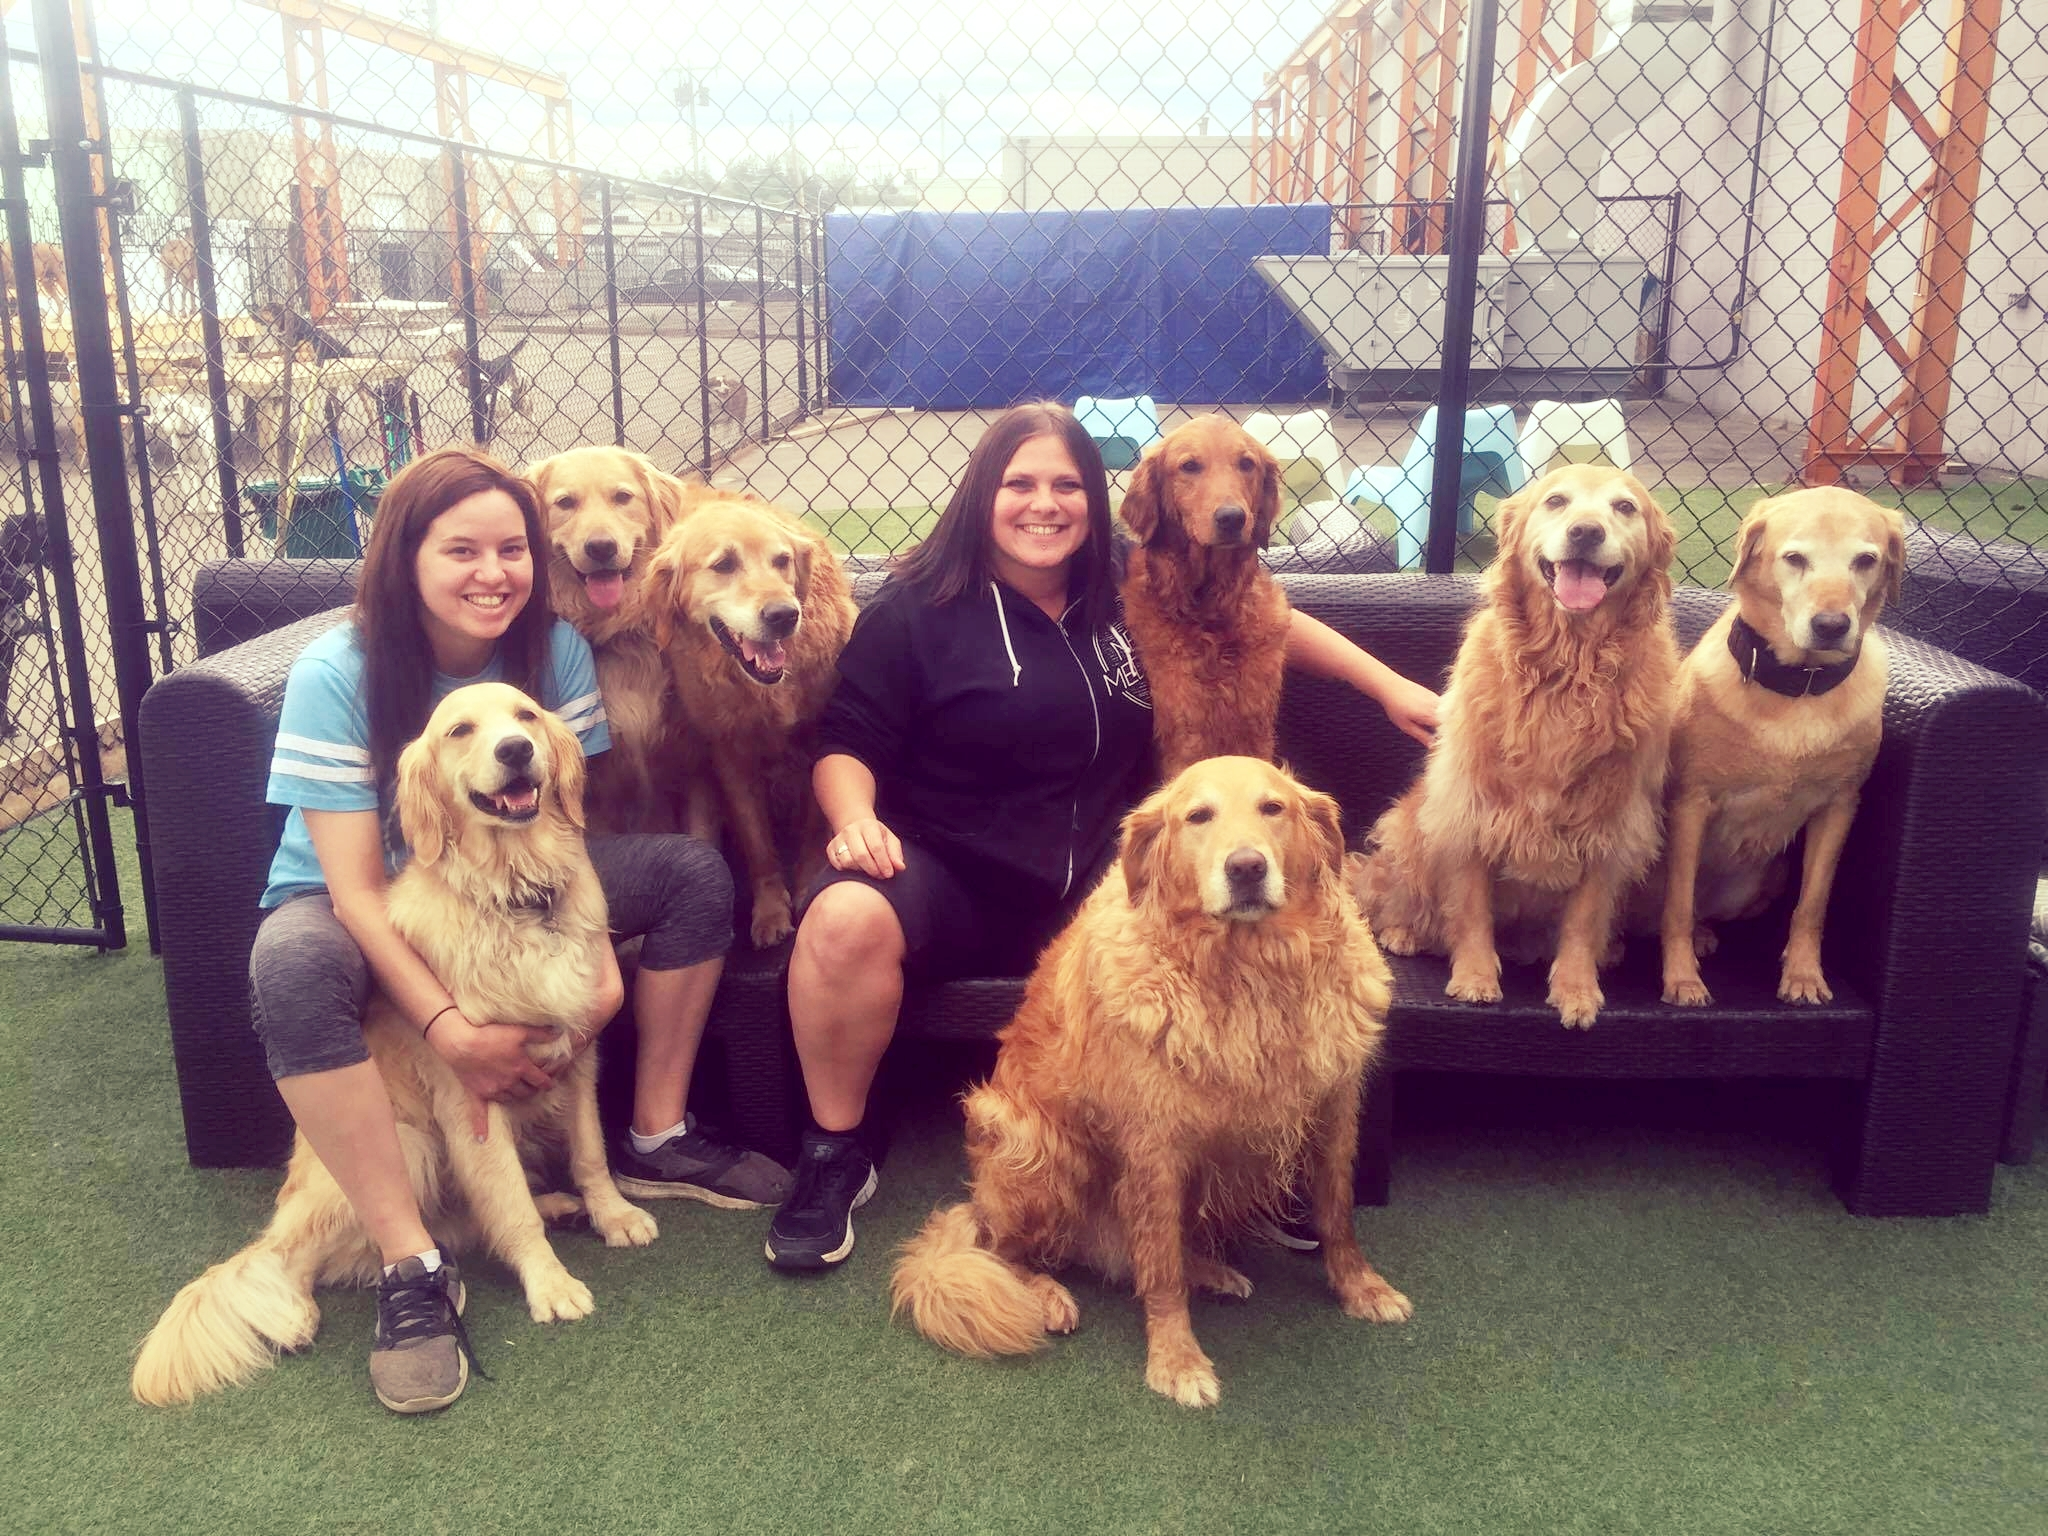 Manager Amanda and Senior Team Lead Ashlea with the Goldens! Summer 2016